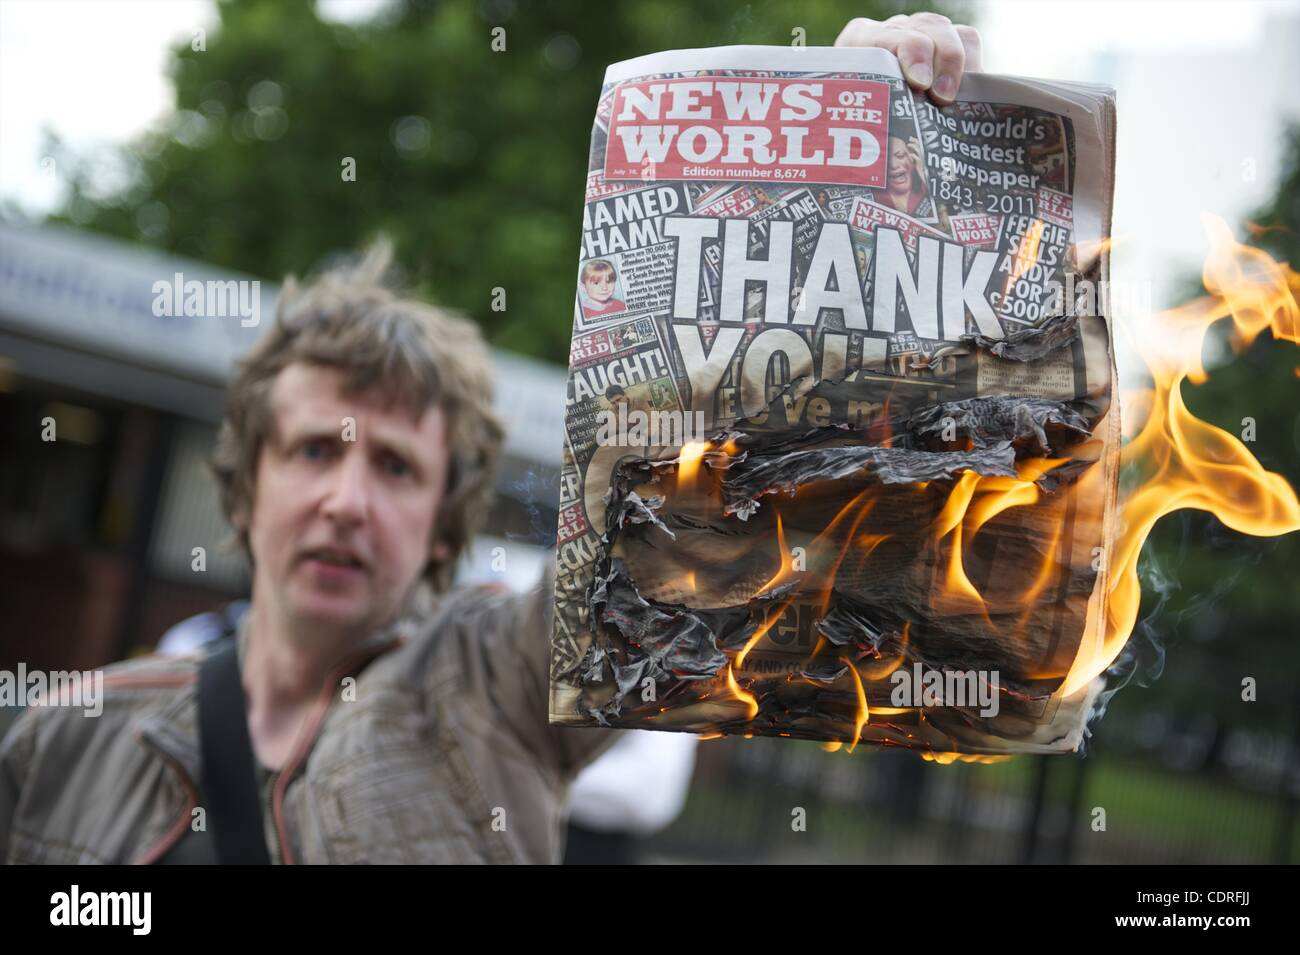 July 10, 2011 - London, England, United Kingdom - A protester burns copies of The News of the World outside News Stock Photo